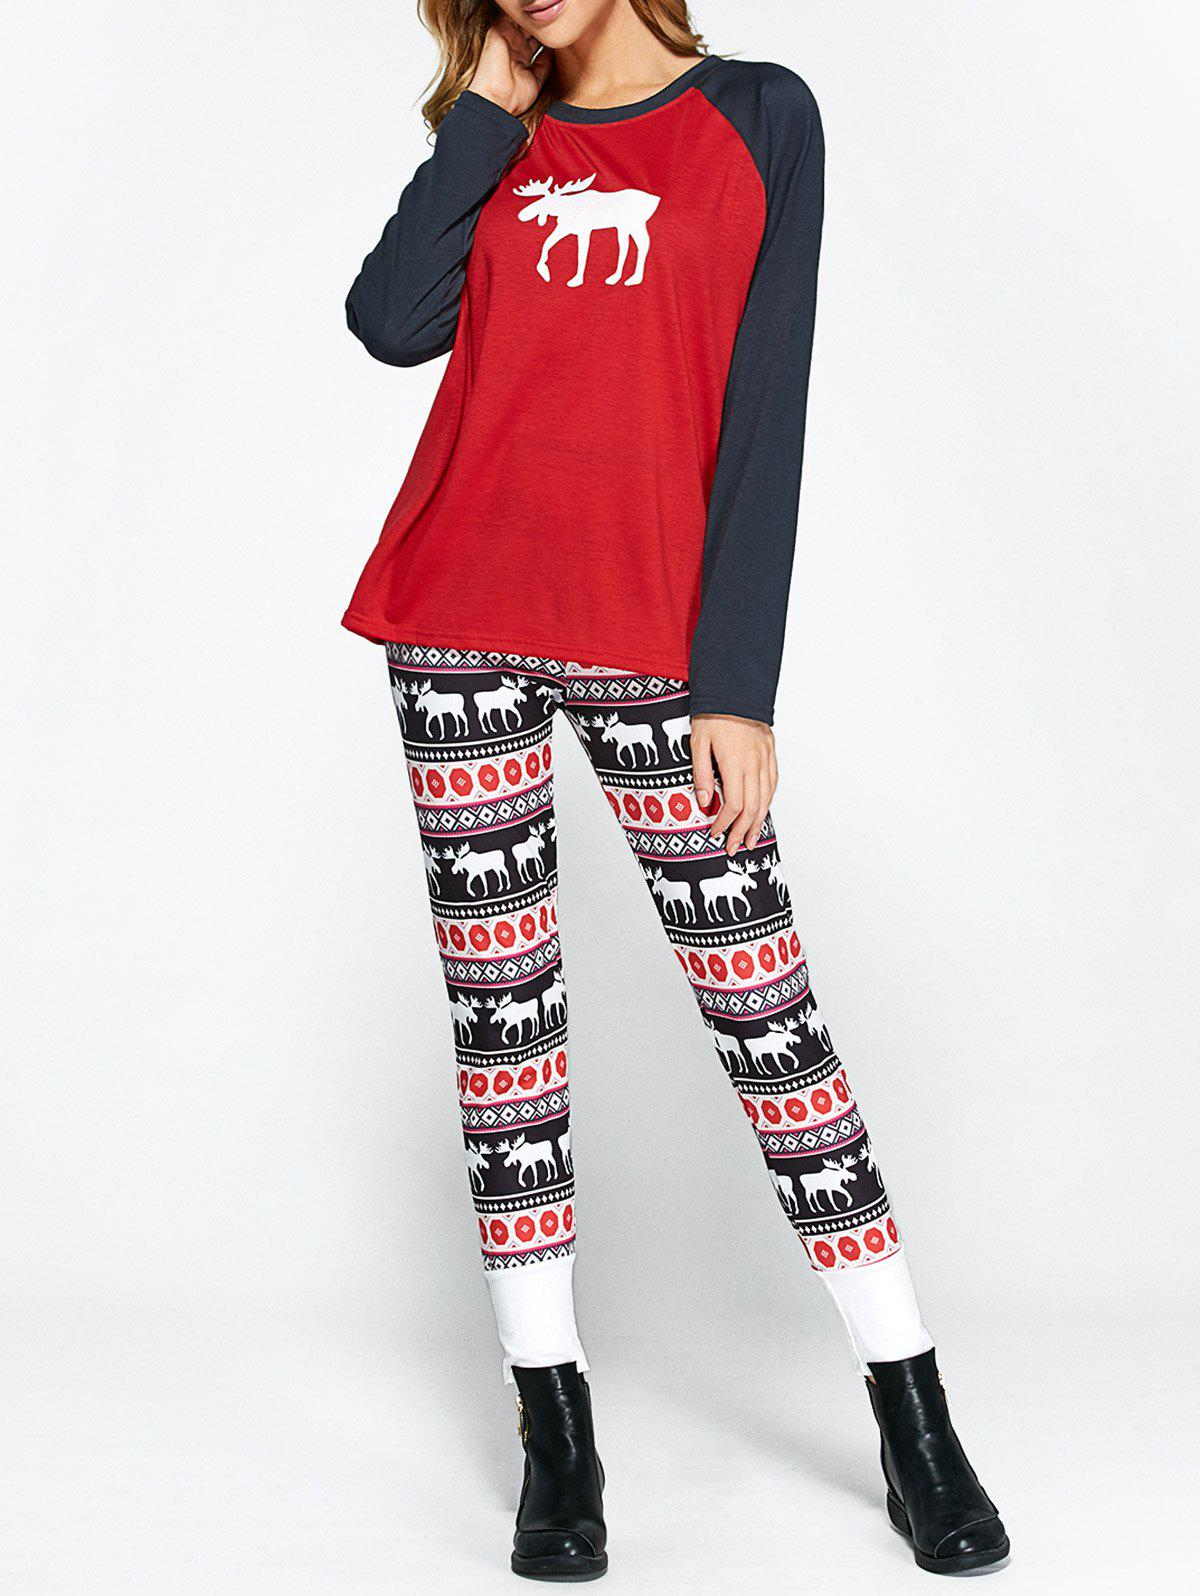 Store Christmas Ornate Print Leggings and Raglan Sleeves Tee